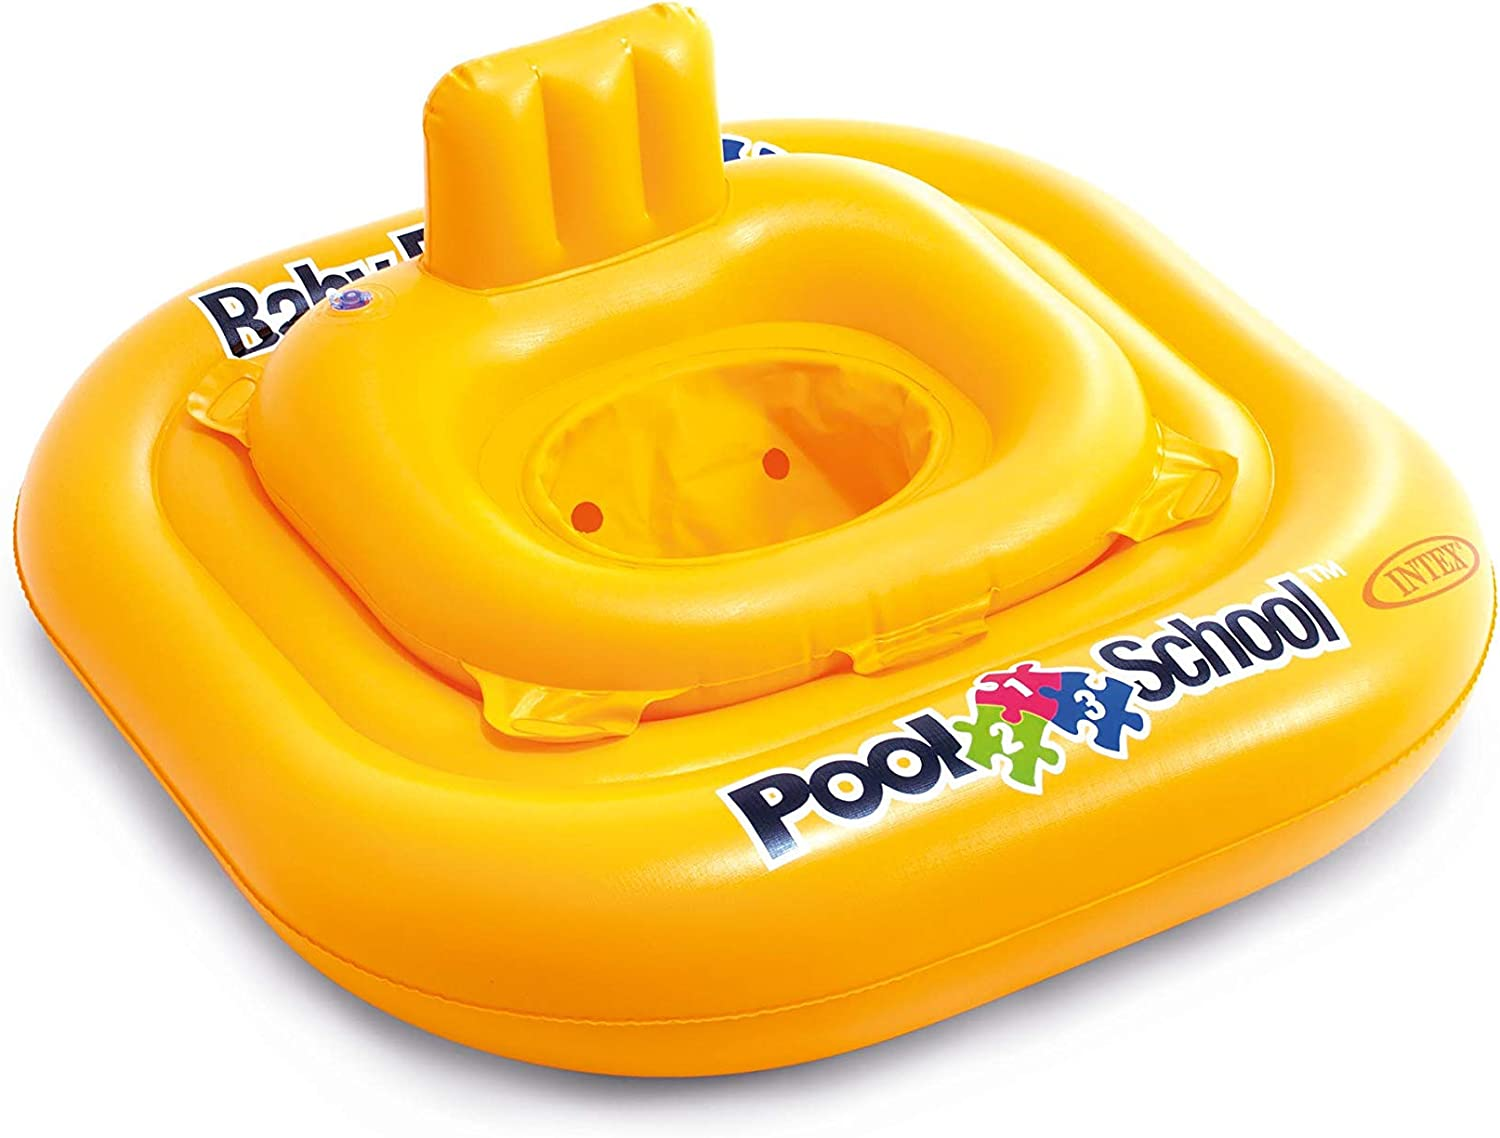 Intex 56587EU - Flotador Hinchable bebé